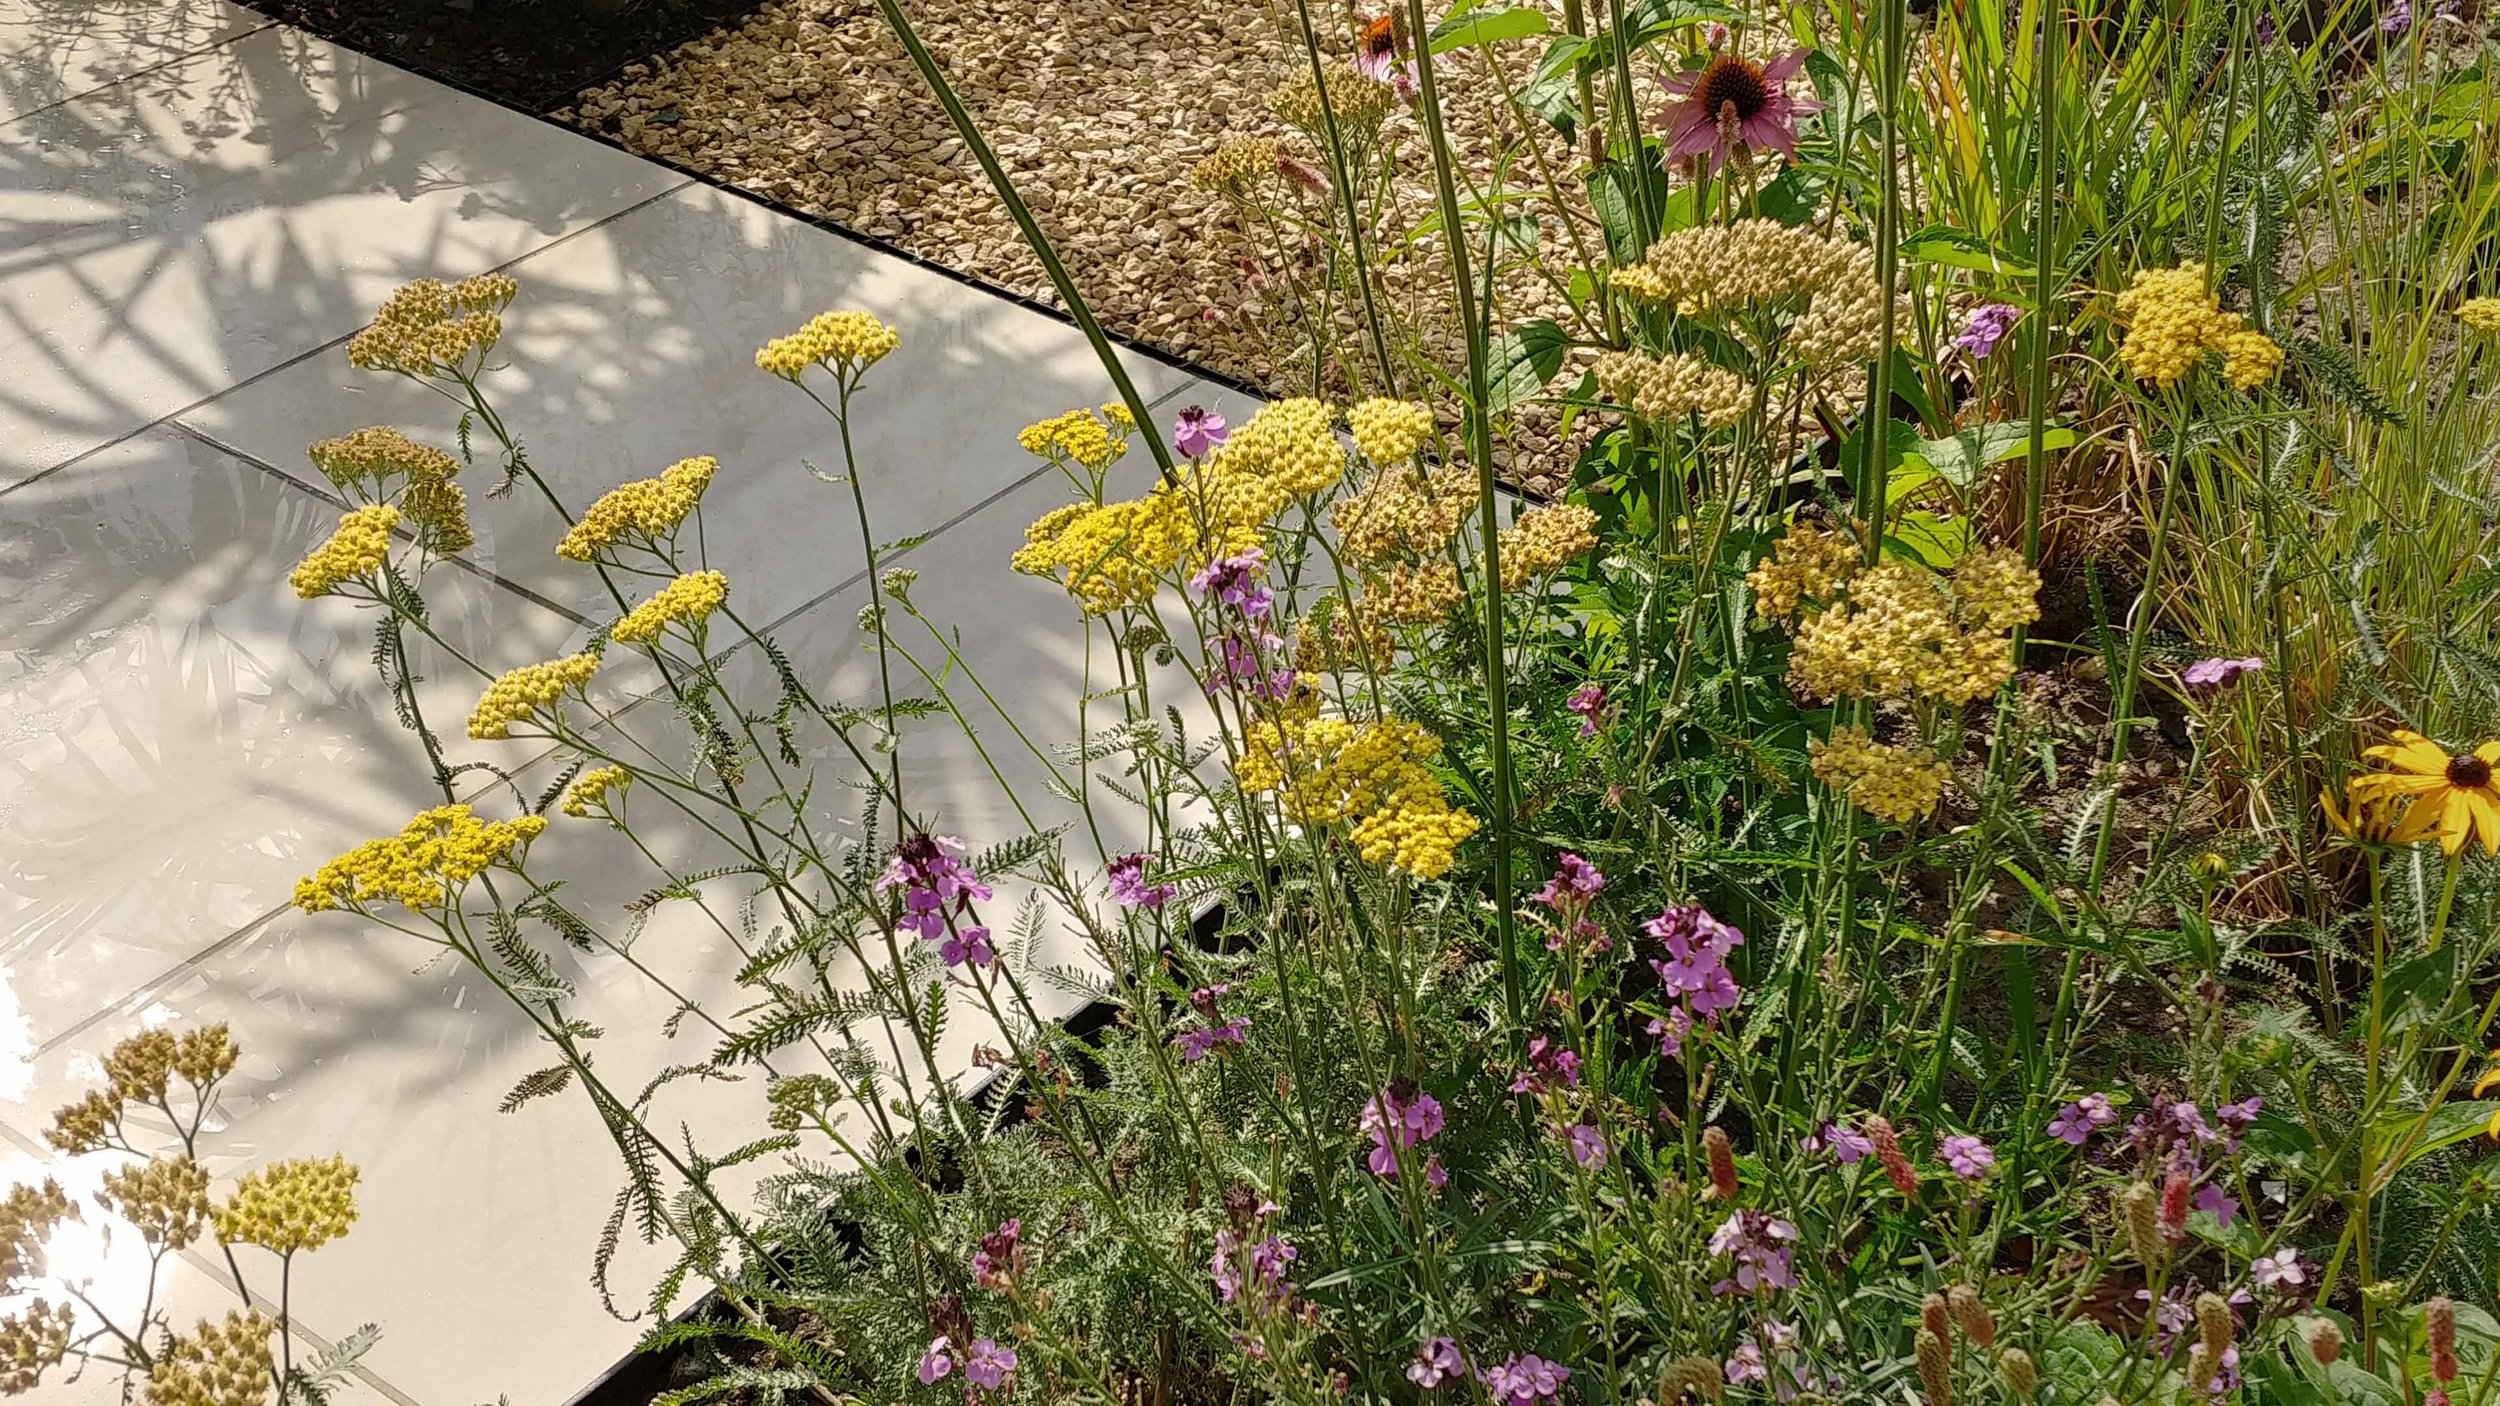 Garden Design Cheshire: Prairie Planting And Porcelain Patio: Porcelain Path and Perennial Border